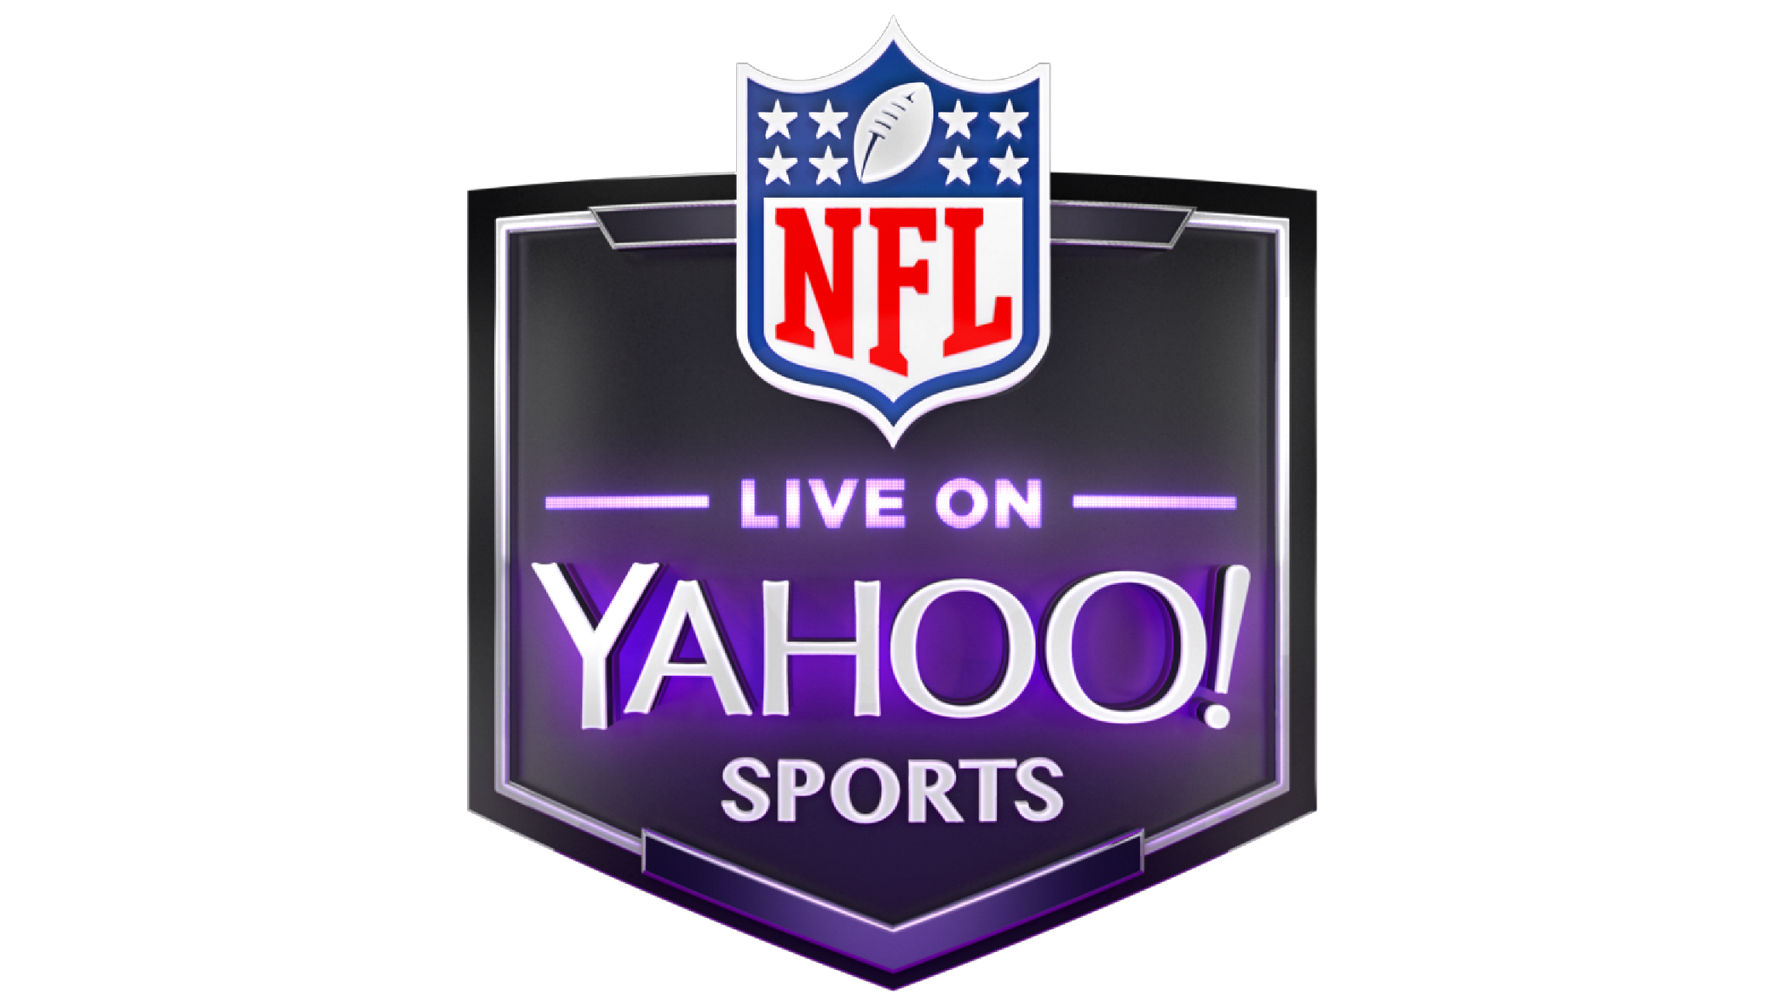 Verizon customers can now enjoy watching live NFL games on the Yahoo sports app.